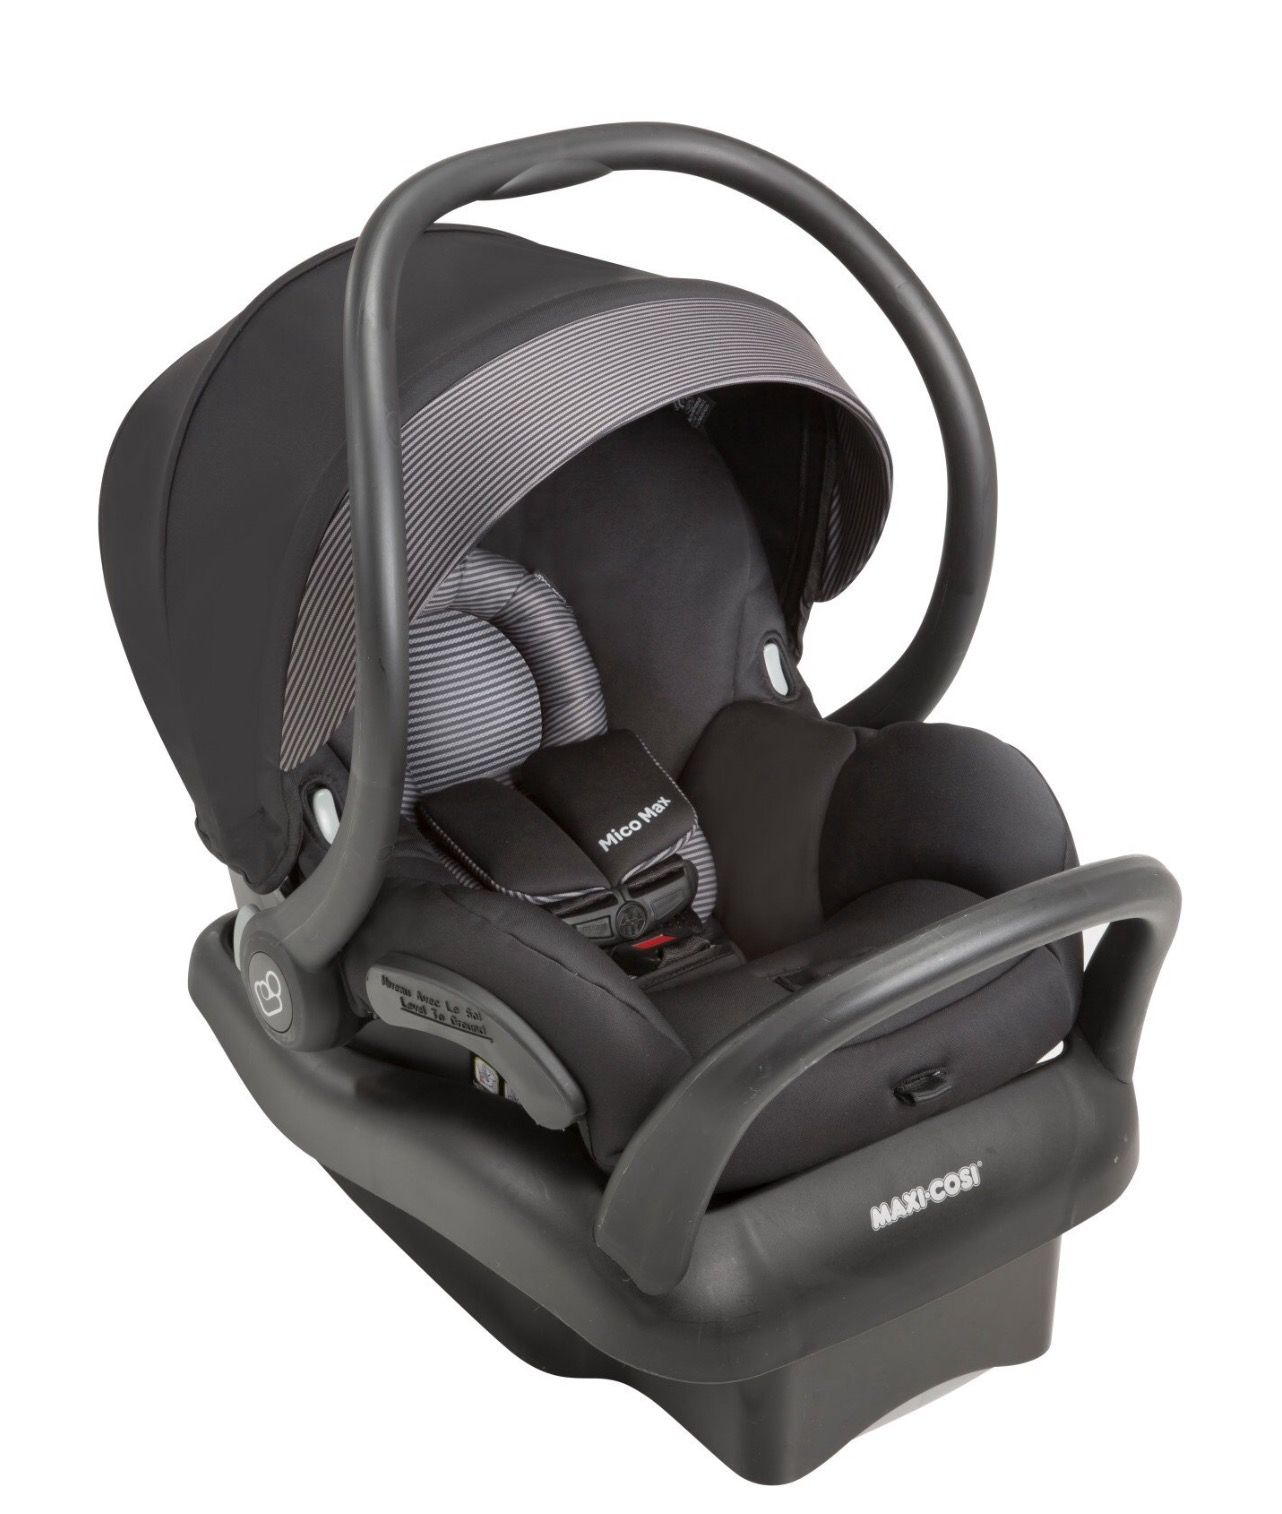 Maxi Cosi Infant Car Seat Compatible with NonToxic, Eco